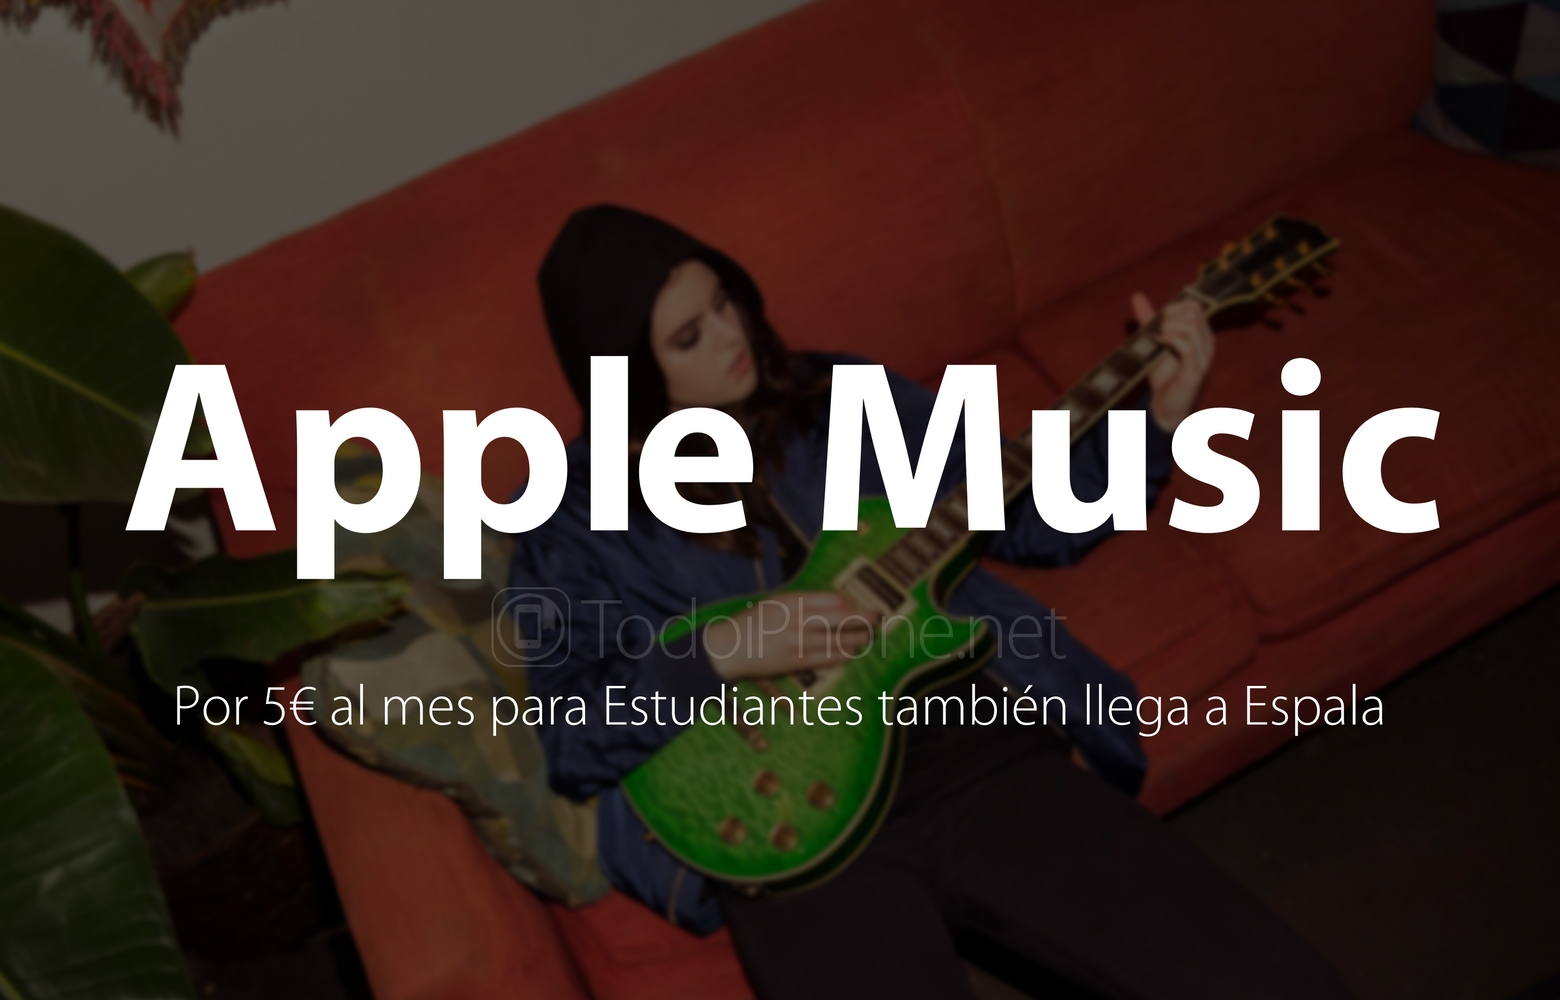 apple-music-estudiantes-espana